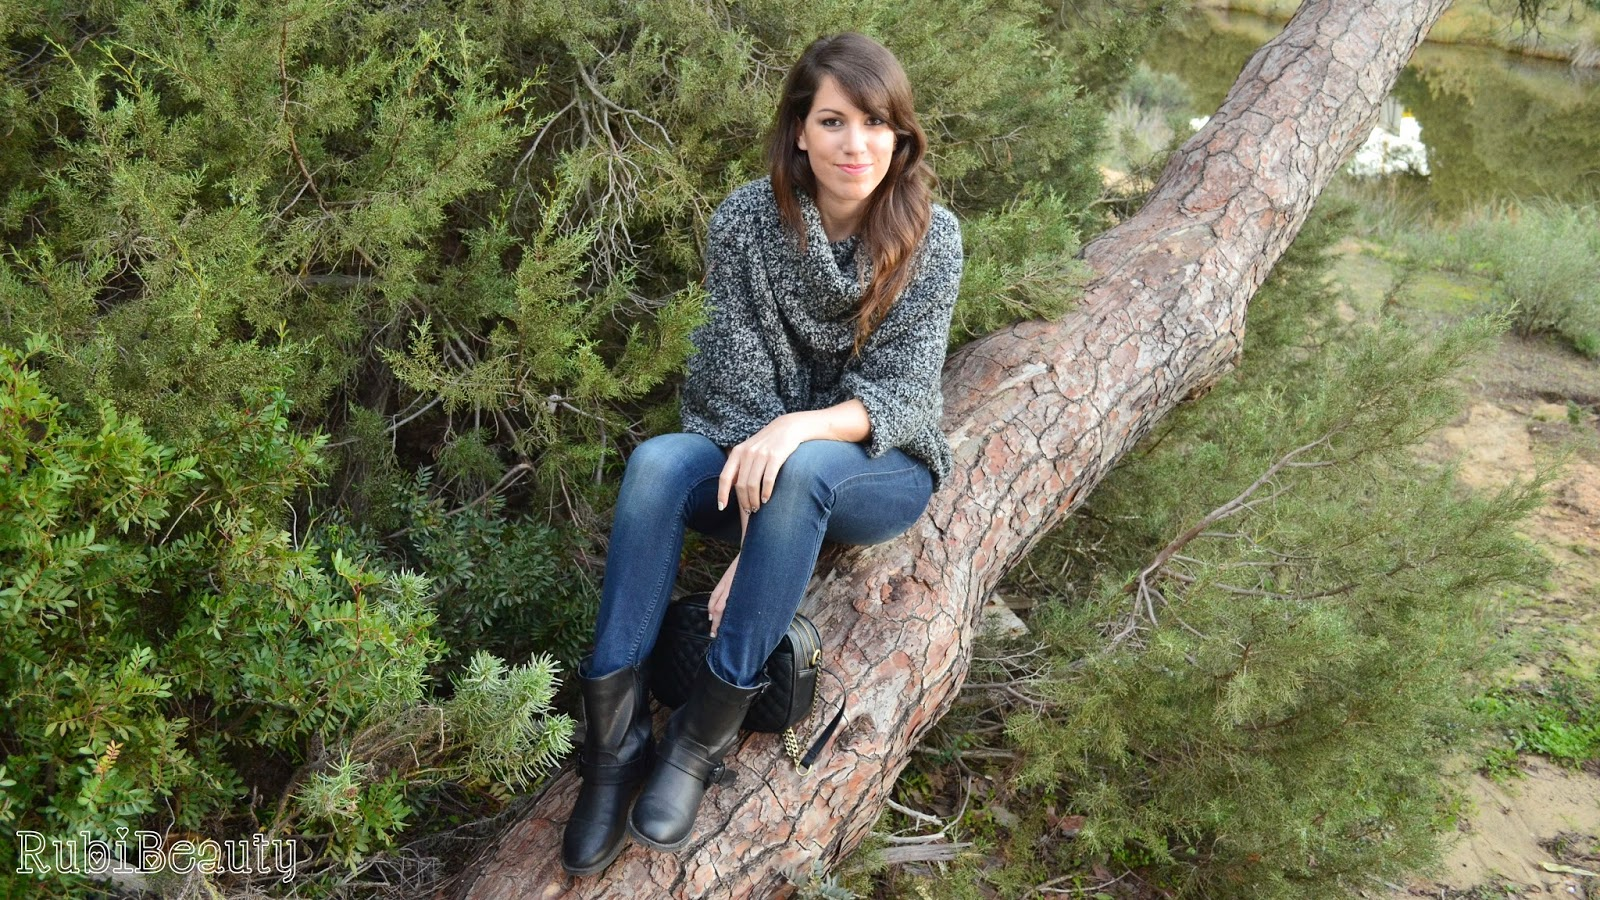 rubibeauty outfit ootd fashion stradivarius autum winter 2014 pull and bear